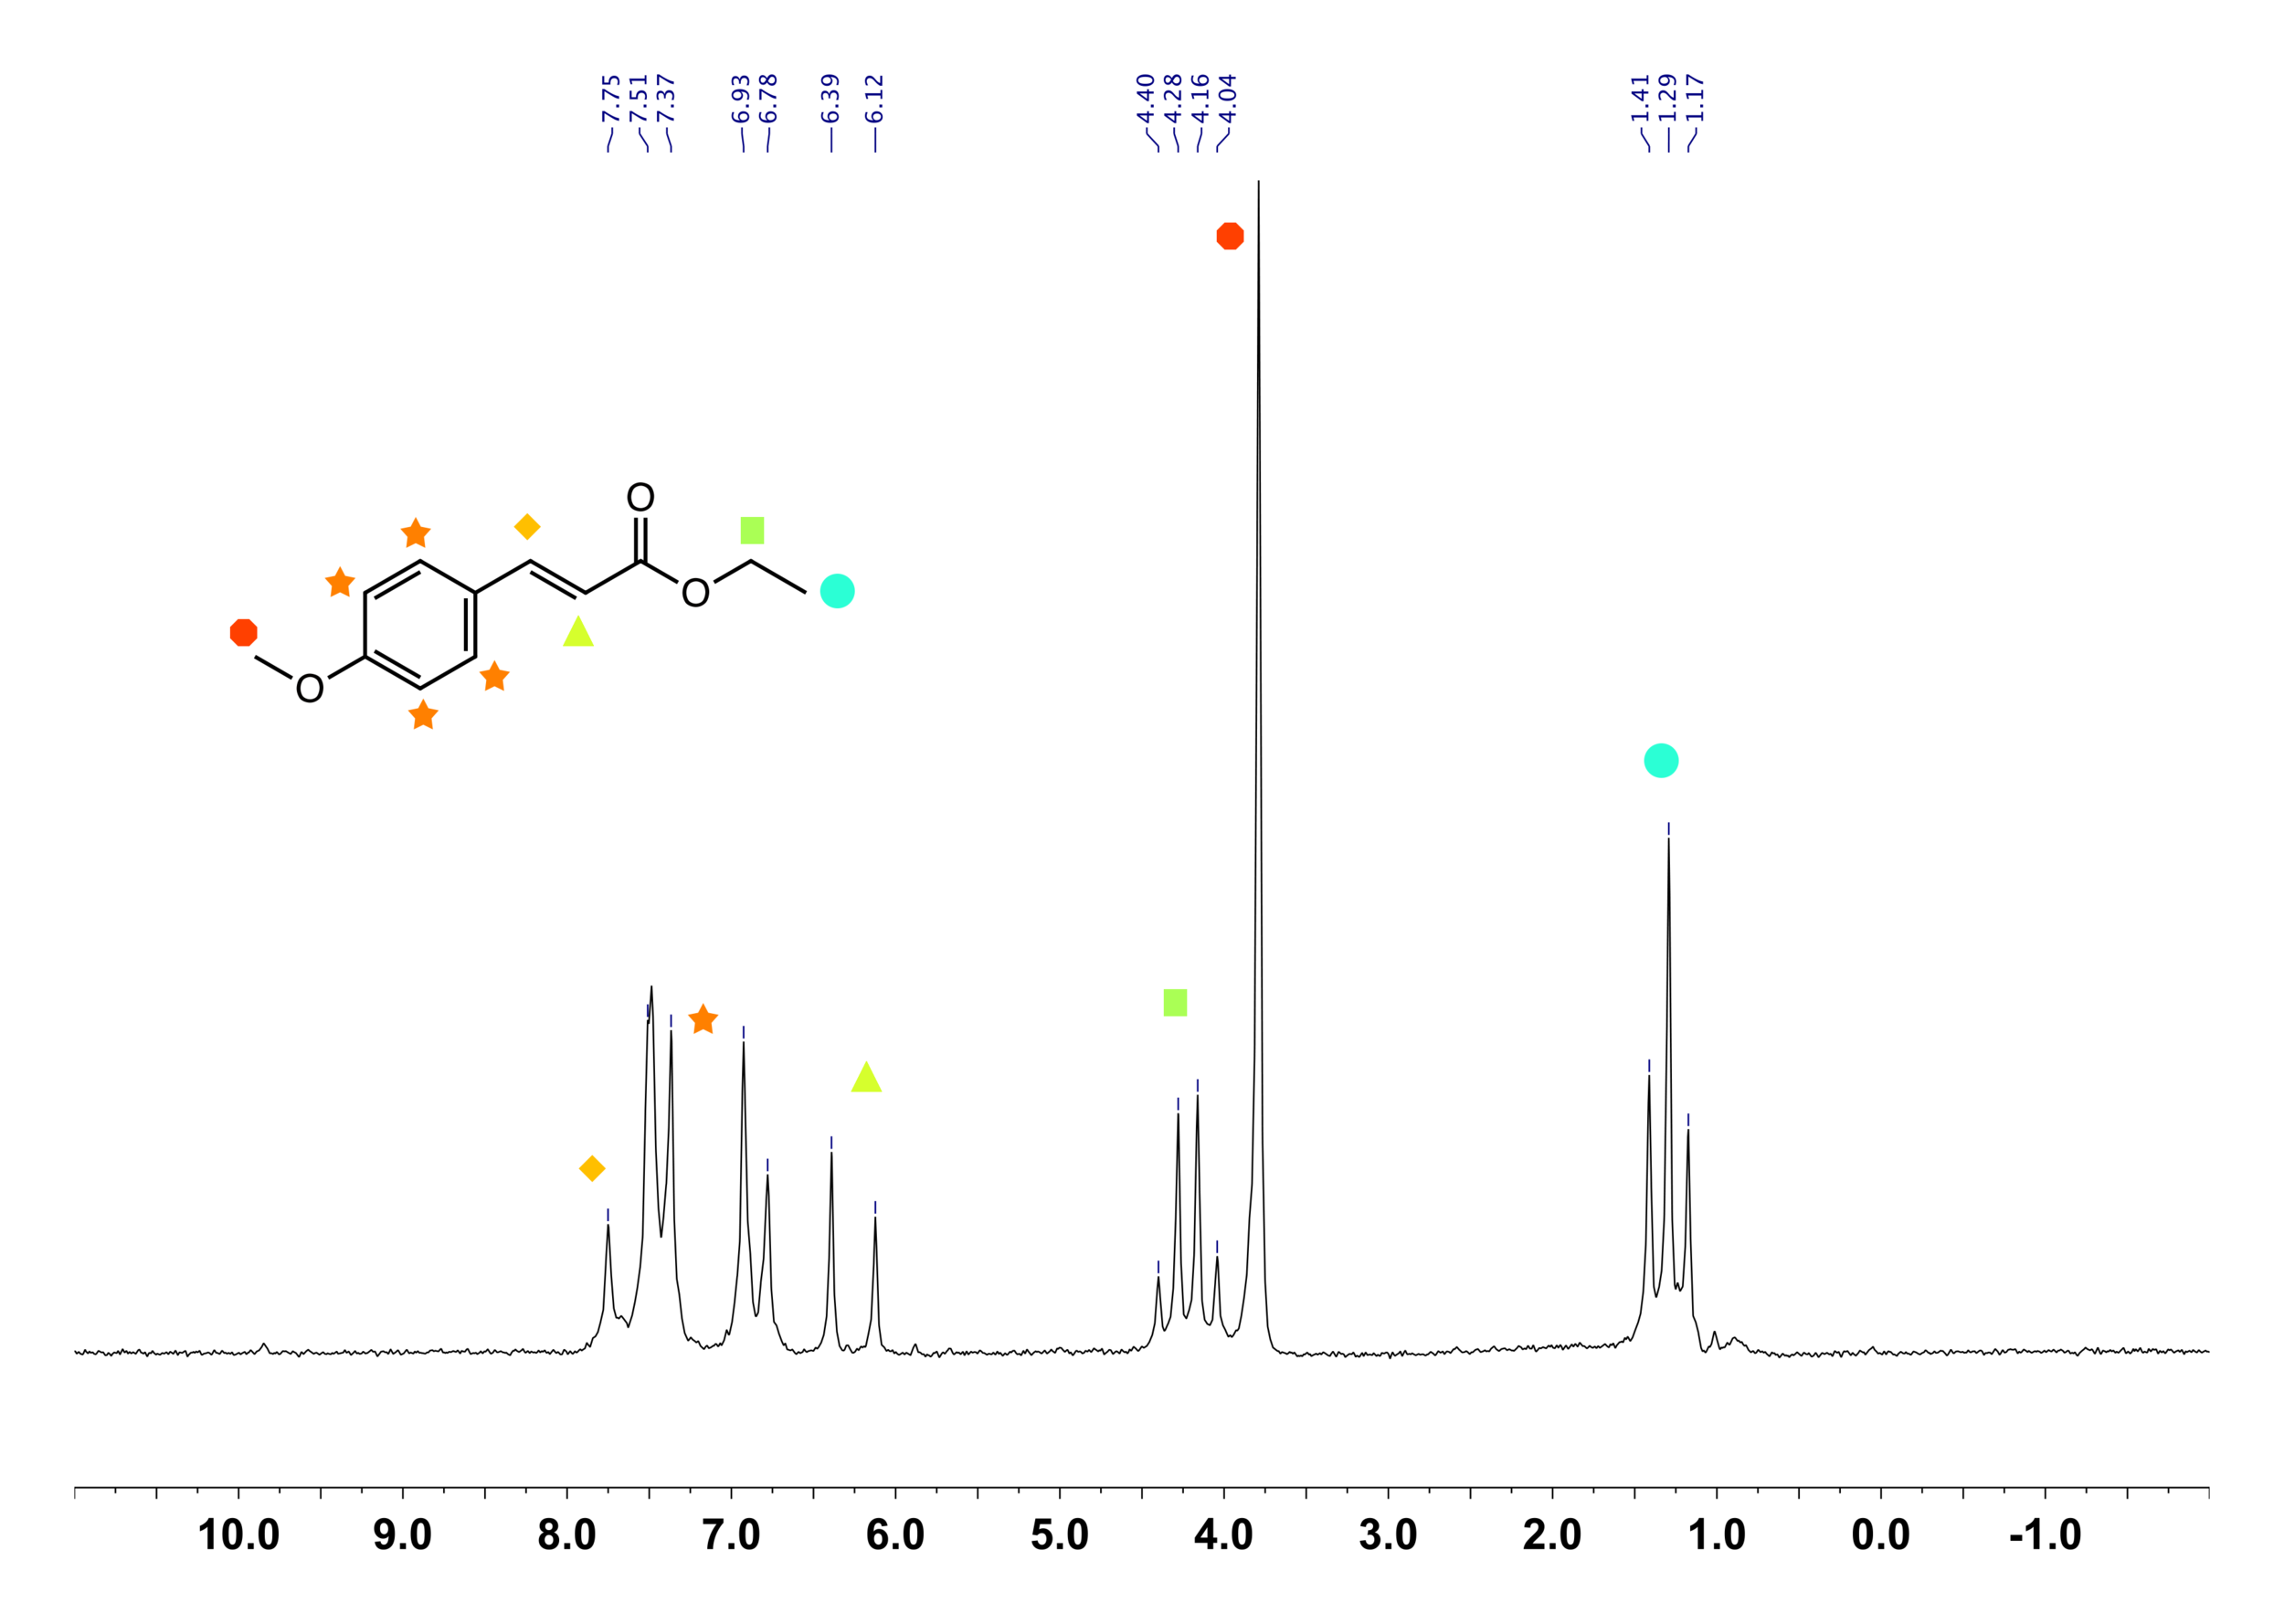 J-RESolved Spectroscopy (JRES) — Benchtop NMR